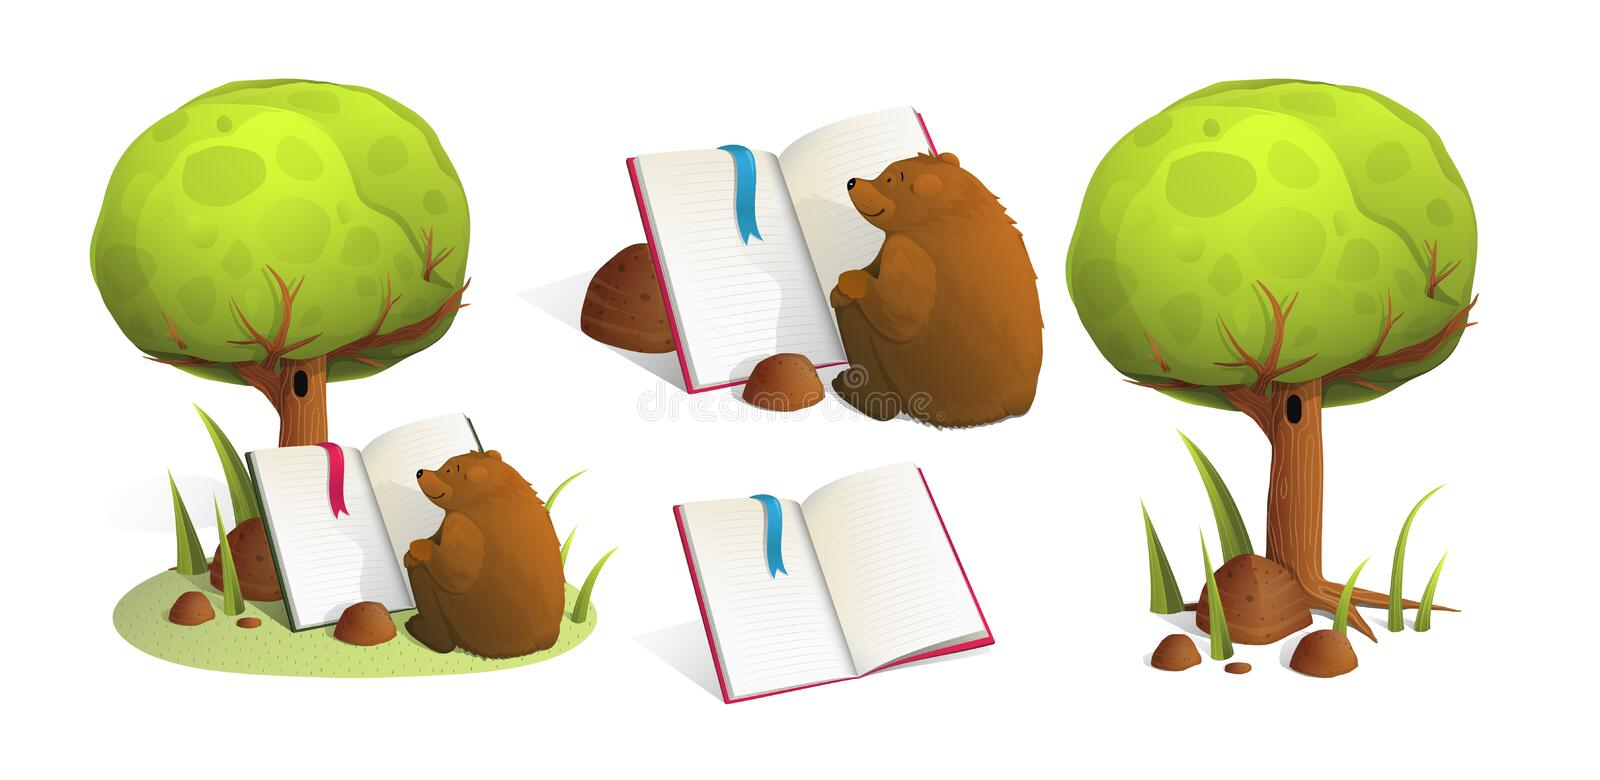 Brown Bear Reading a book under green tree in forest. royalty free illustration